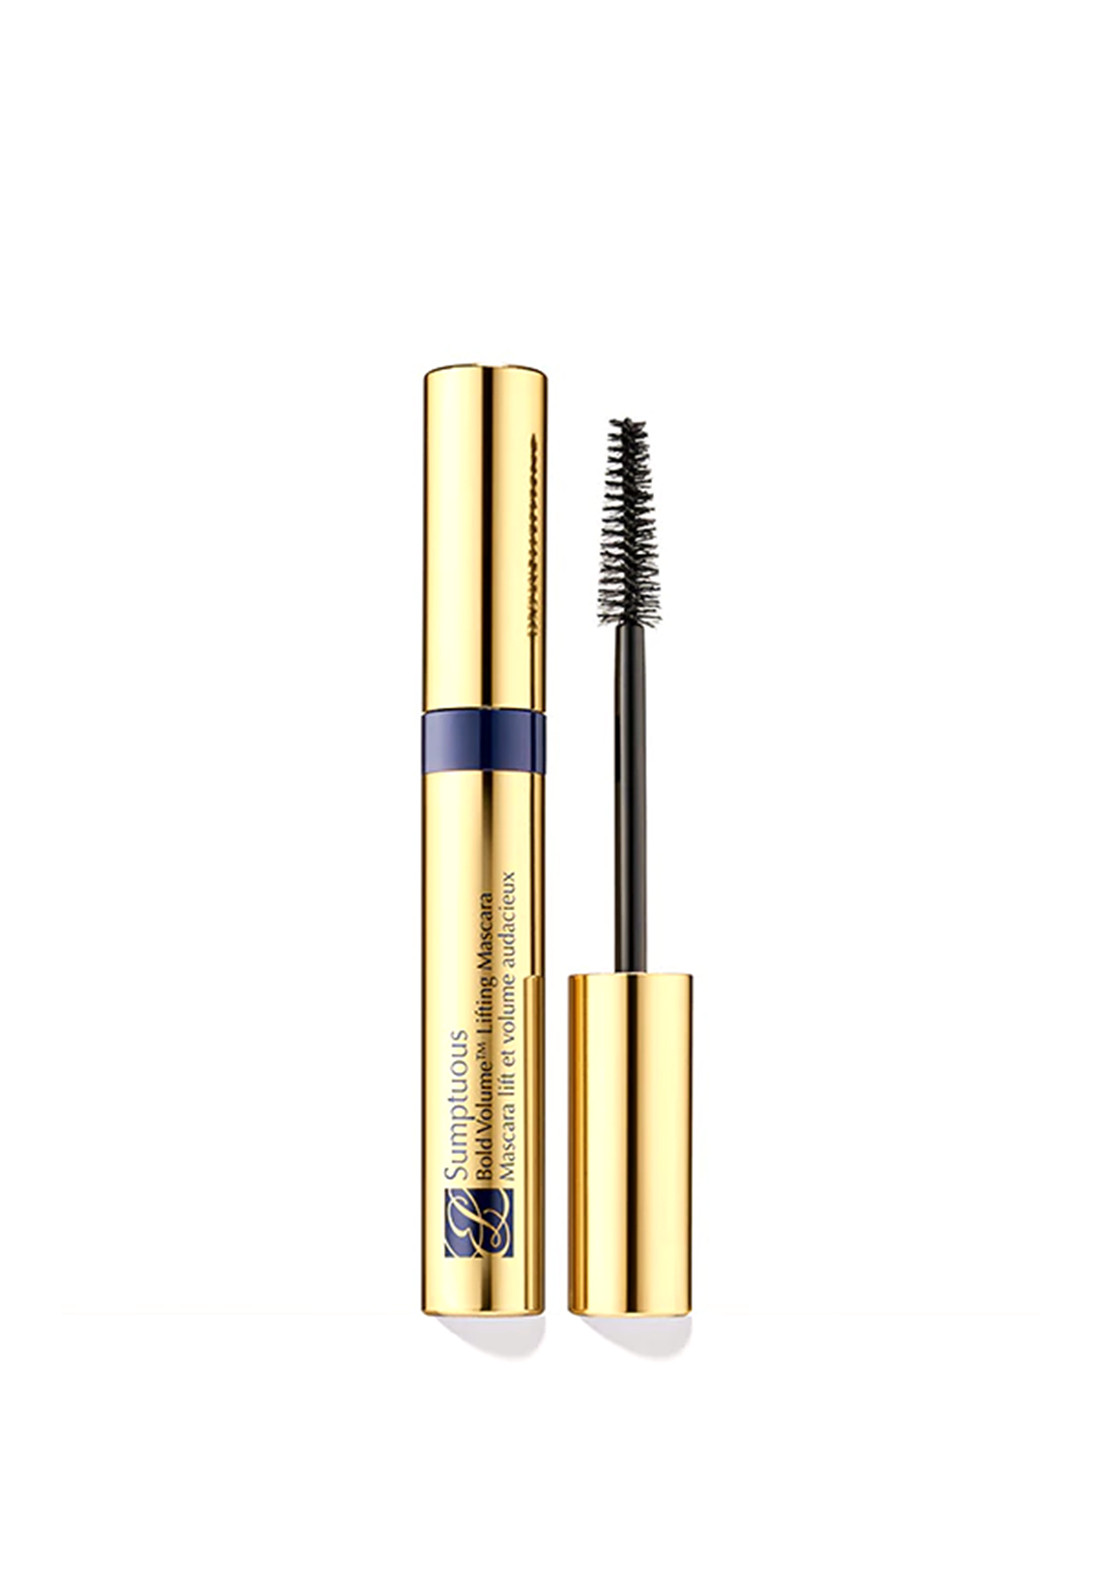 Estee Lauder Sumptuous Bold Volume Lifting Mascara, Brown